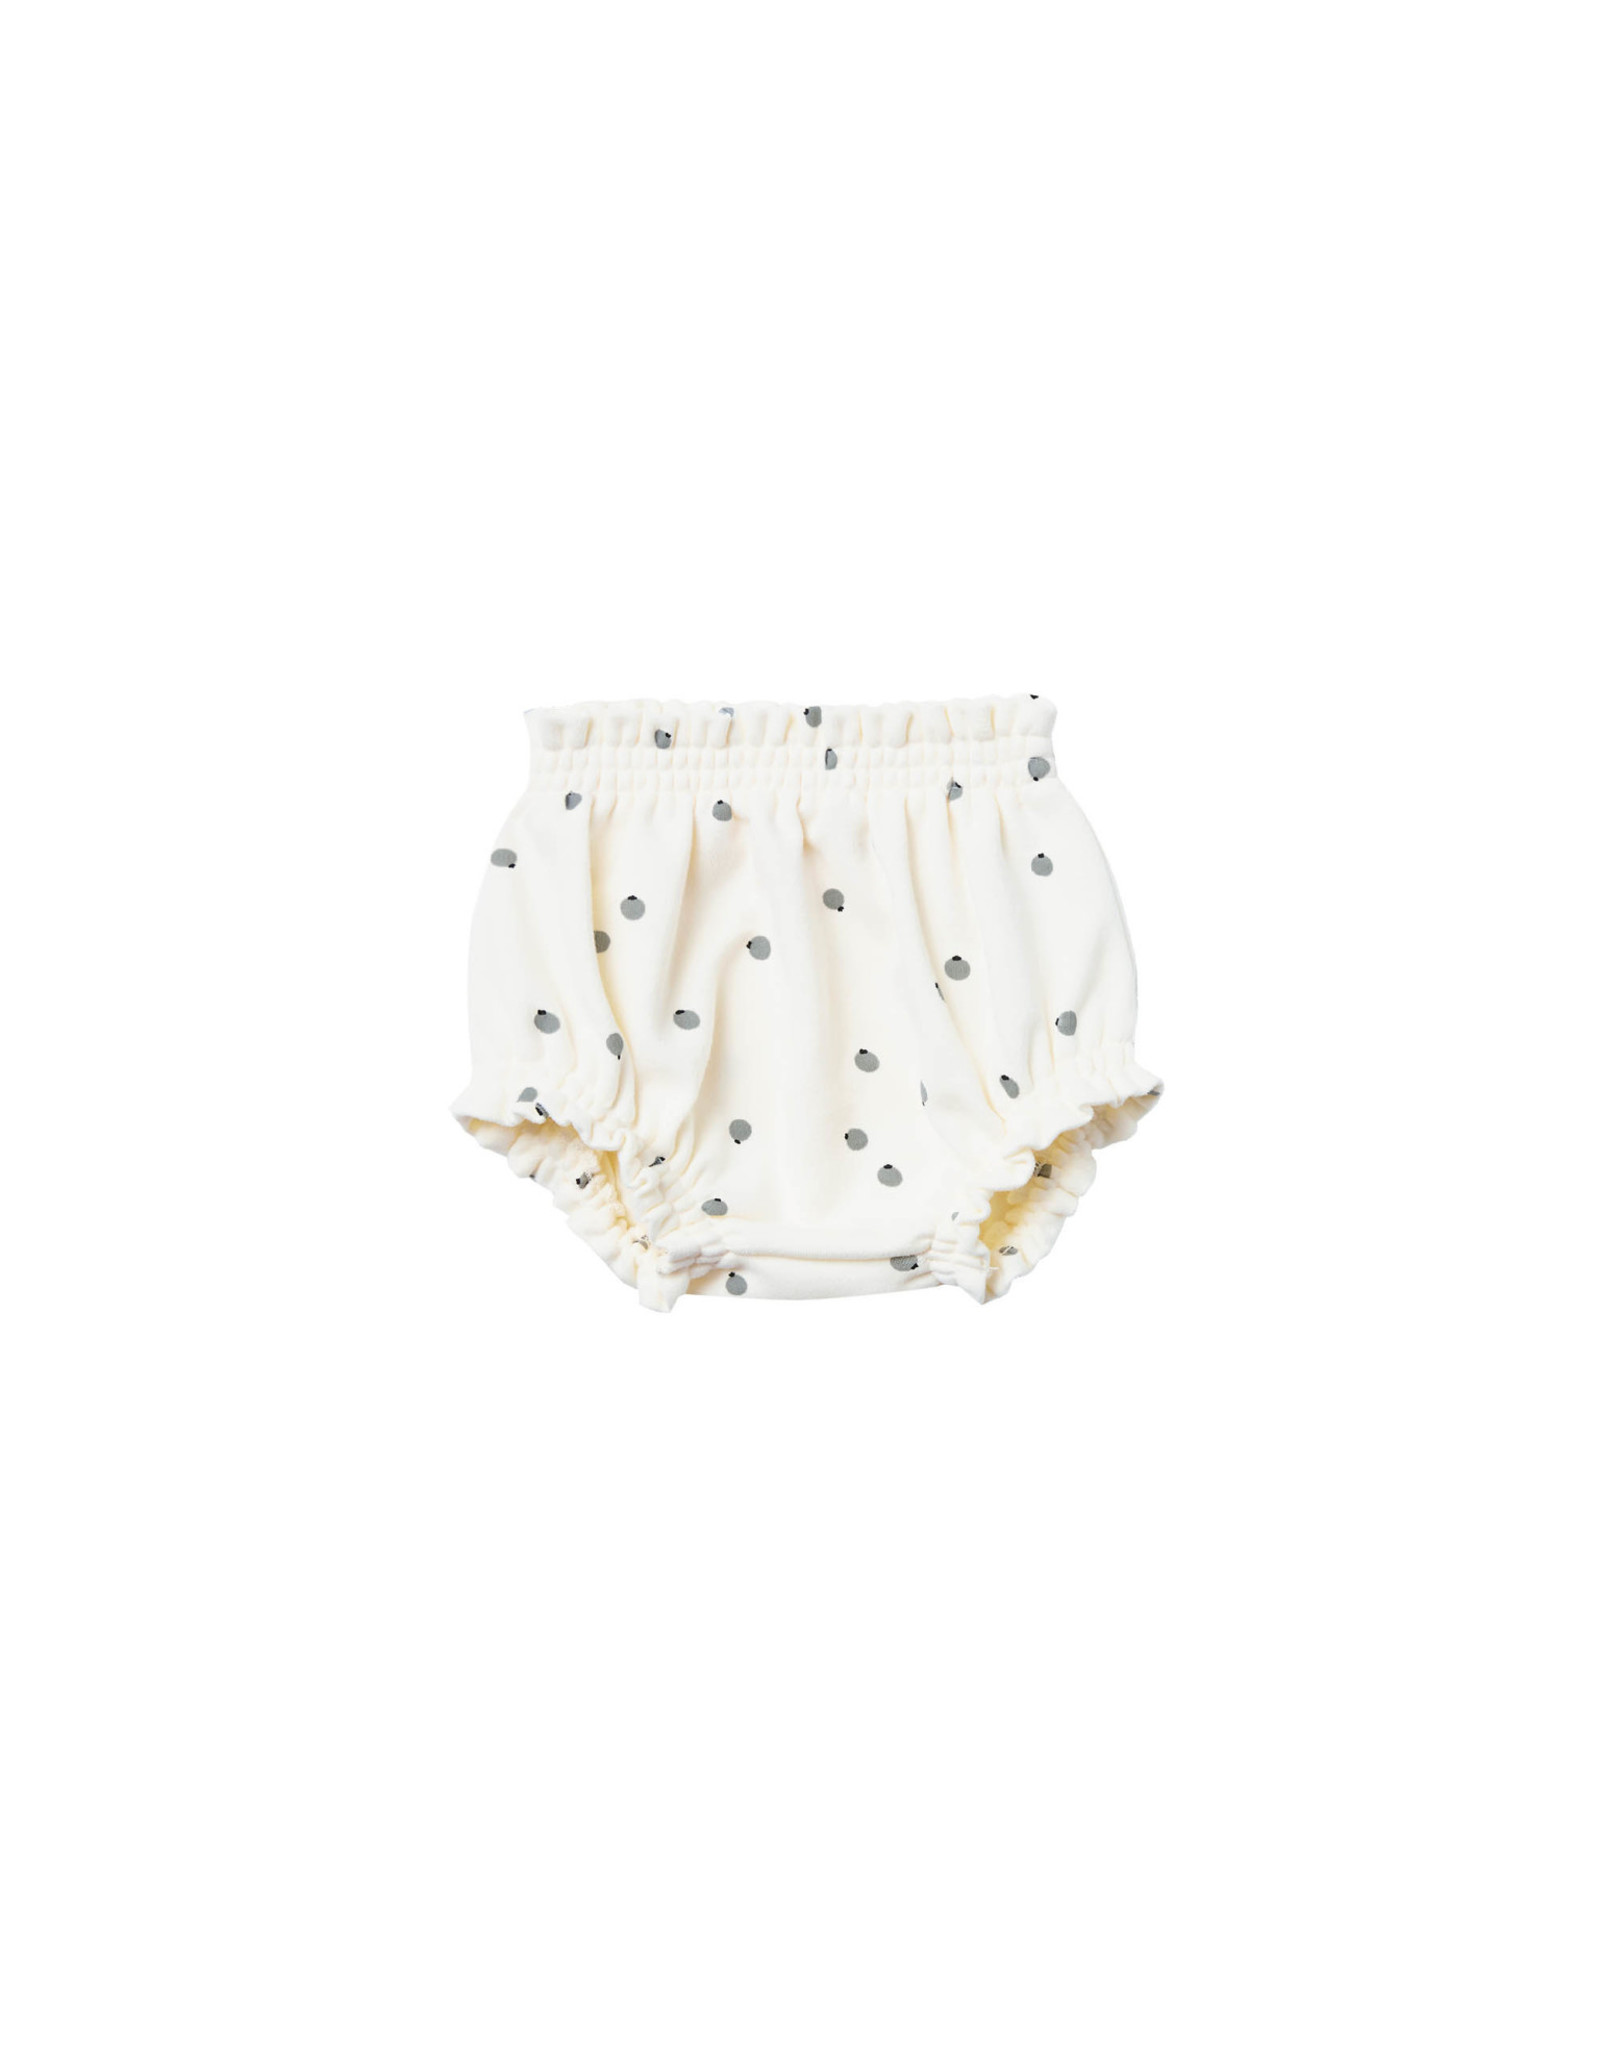 Quincy Mae Quincy Mae Gathered Bloomer, Ivory